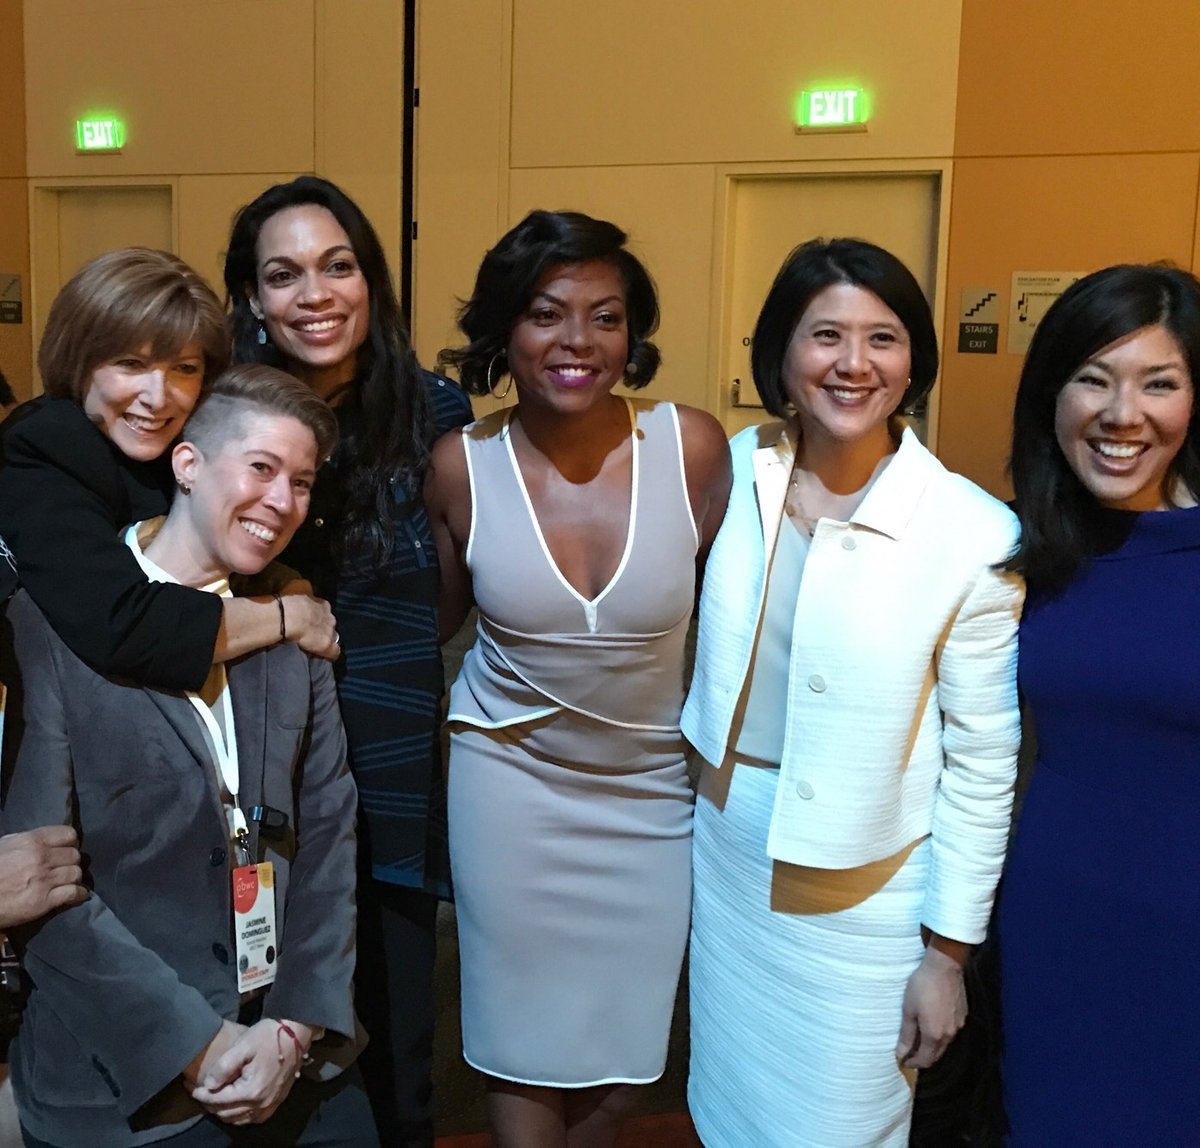 <div class='meta'><div class='origin-logo' data-origin='none'></div><span class='caption-text' data-credit='KGO-TV'>Attendees including Taraji P. Henson, Rosario Dawson, and Kristen Sze pose at the Professional BusinessWomen of California Conference in San Francisco on March, 28, 2017.</span></div>